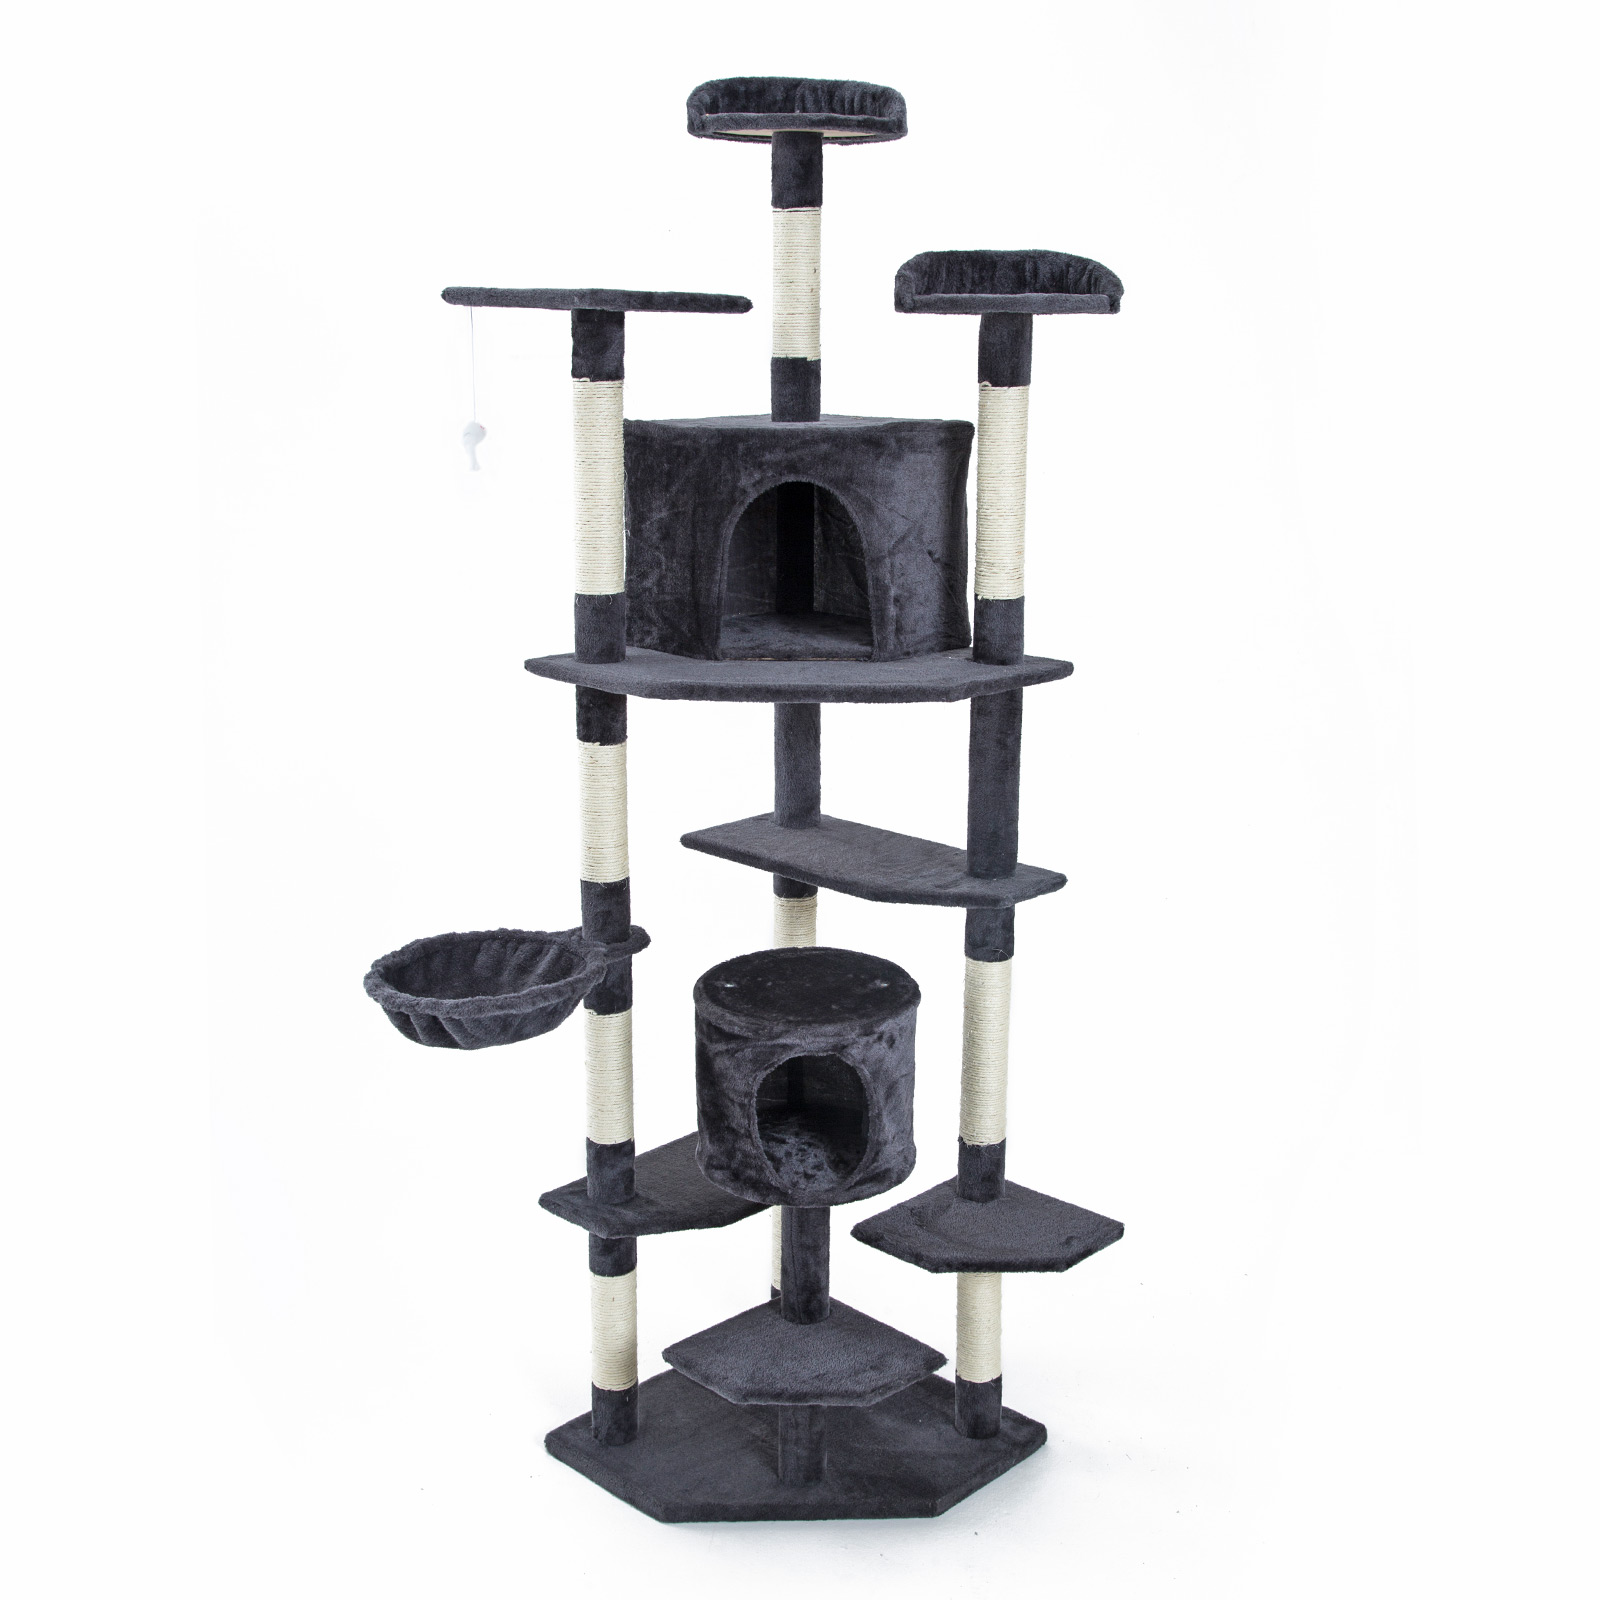 201cm Cat Tree Scratcher PARALA - GREY